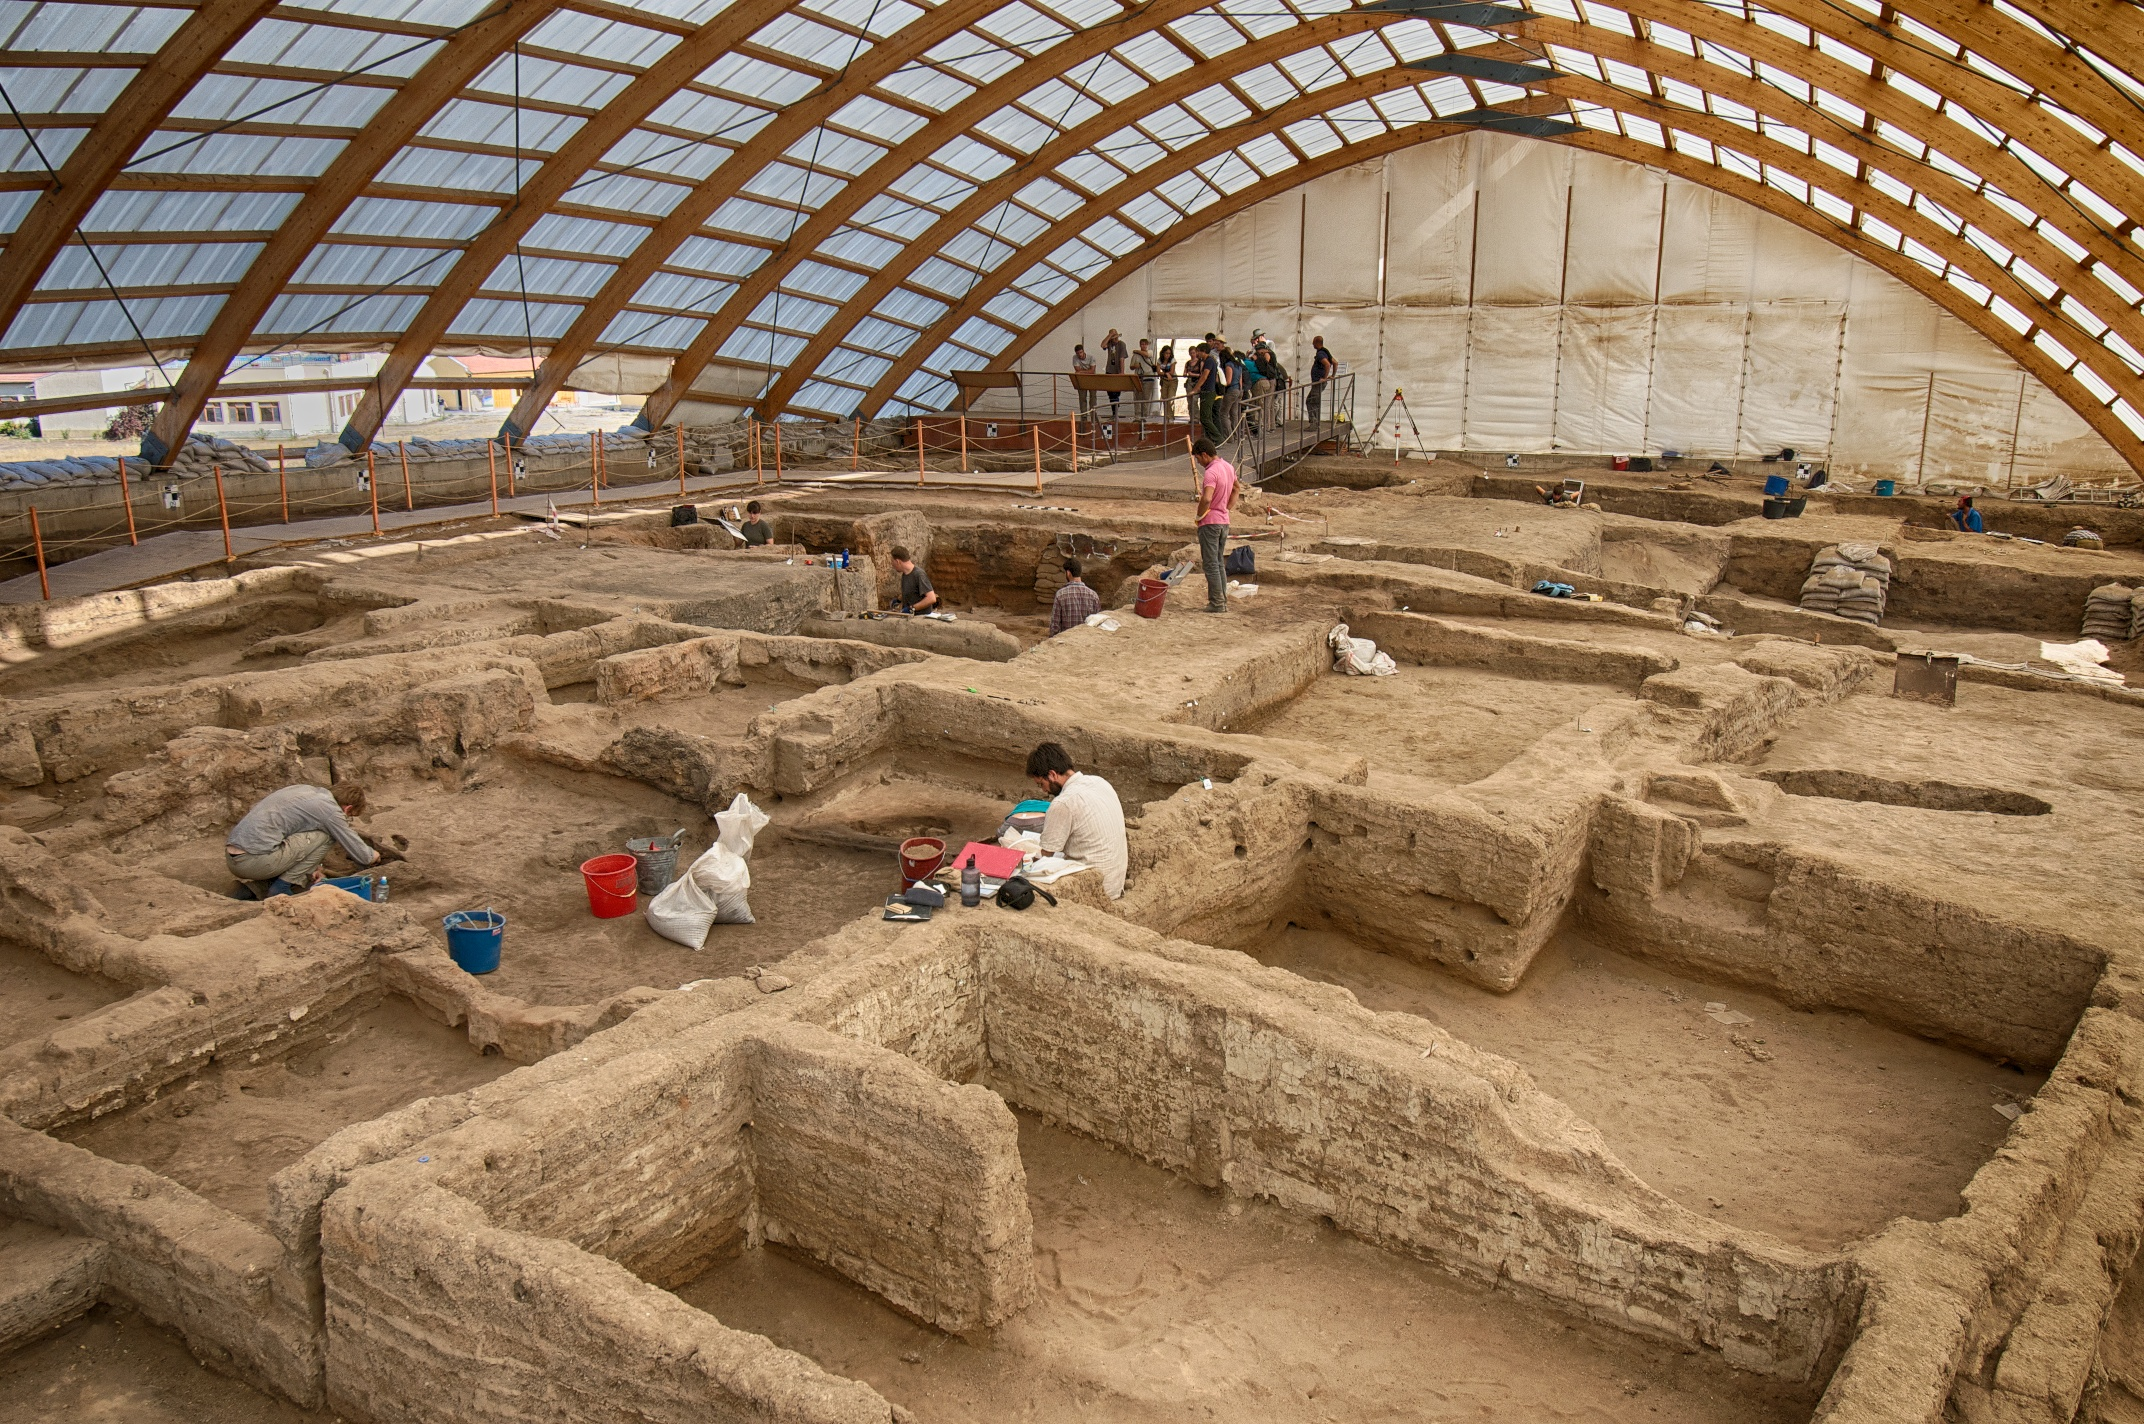 Wide view of the North Area excavation underneath the shelter.